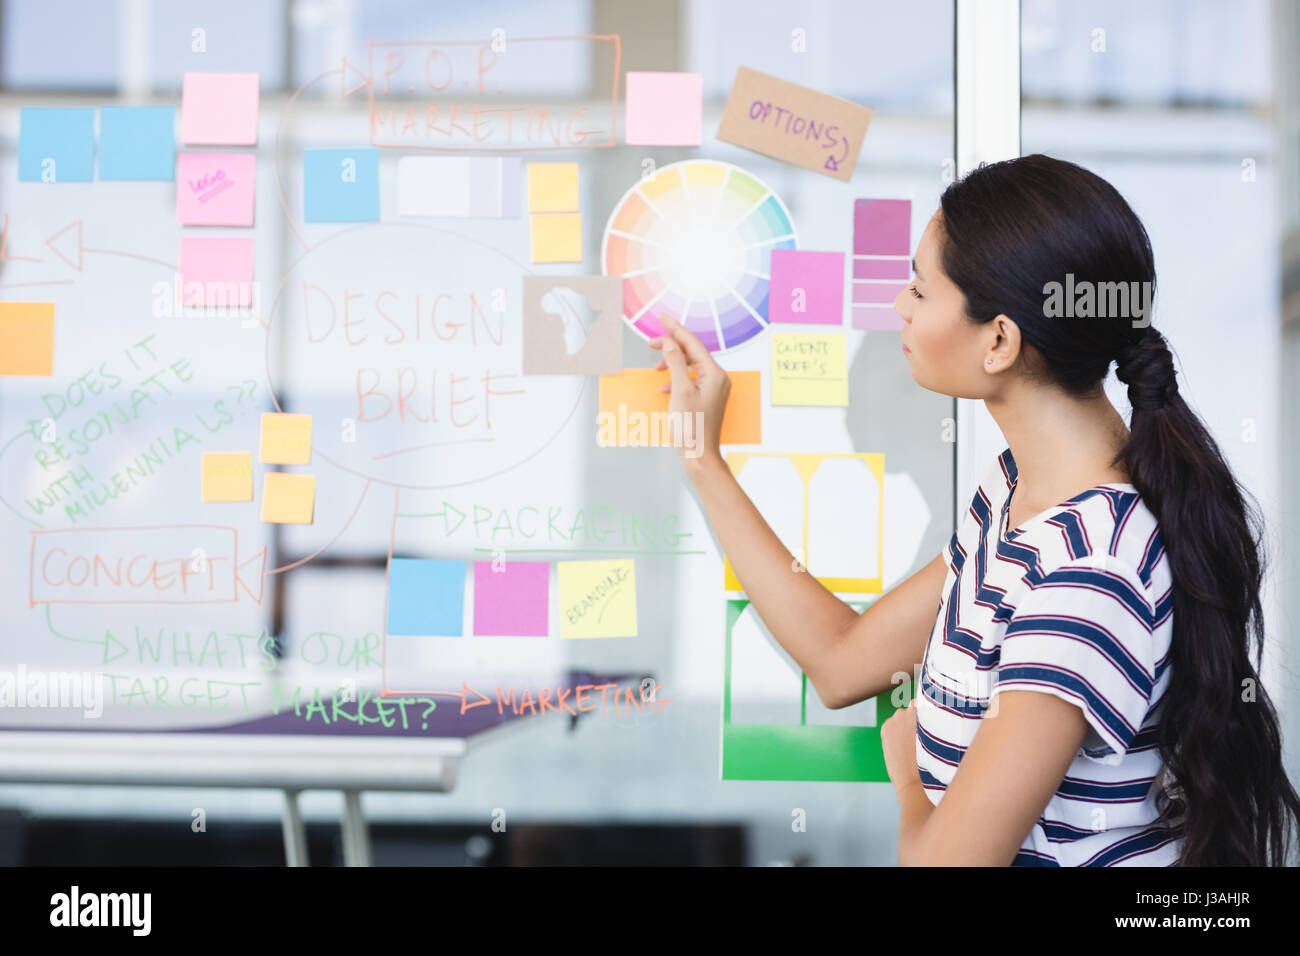 Businesswoman looking at plan on glass wall in office - Stock Image